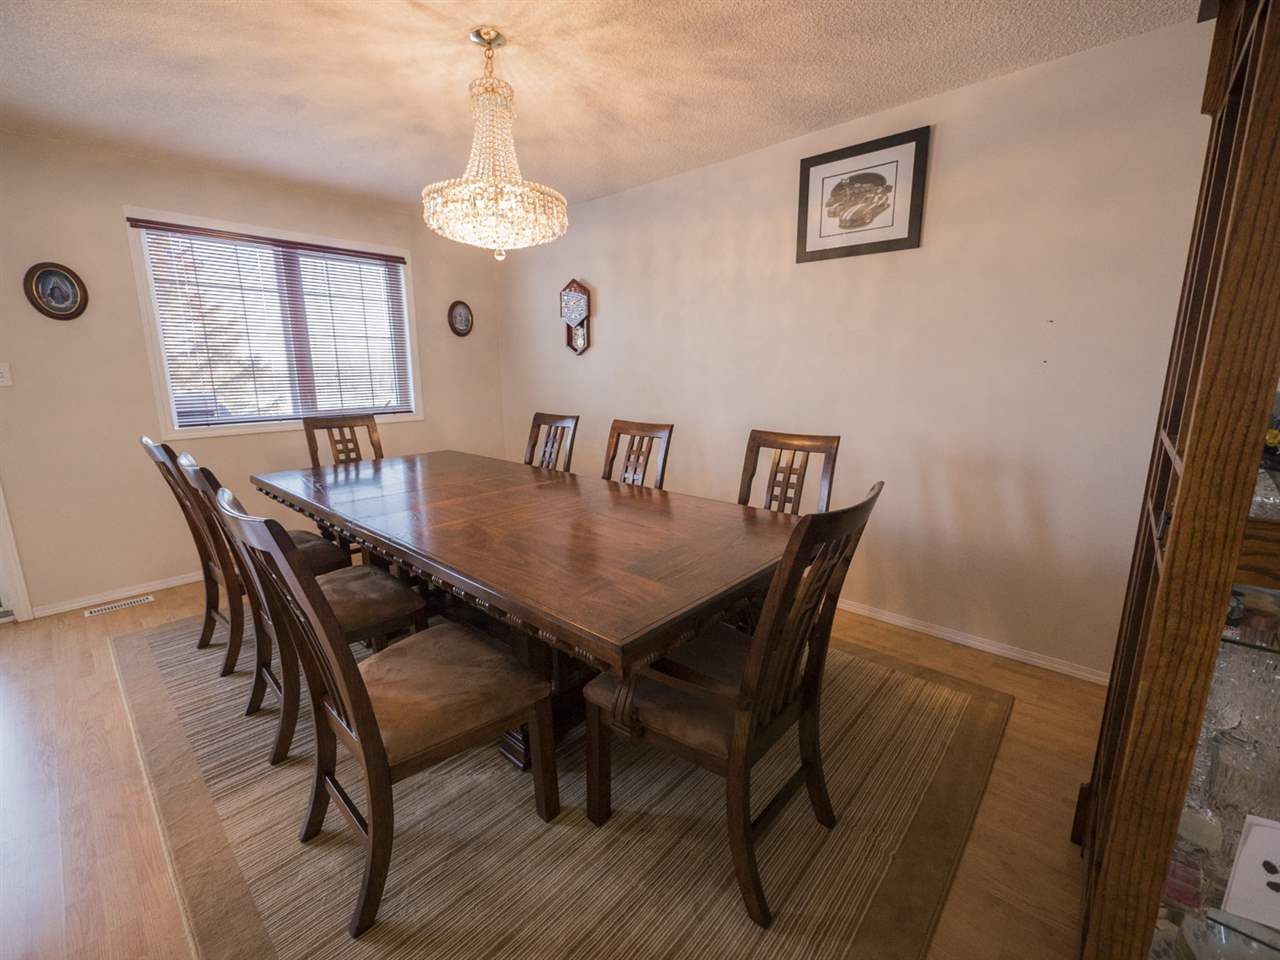 Plenty of space for intimate meals with family and friends.